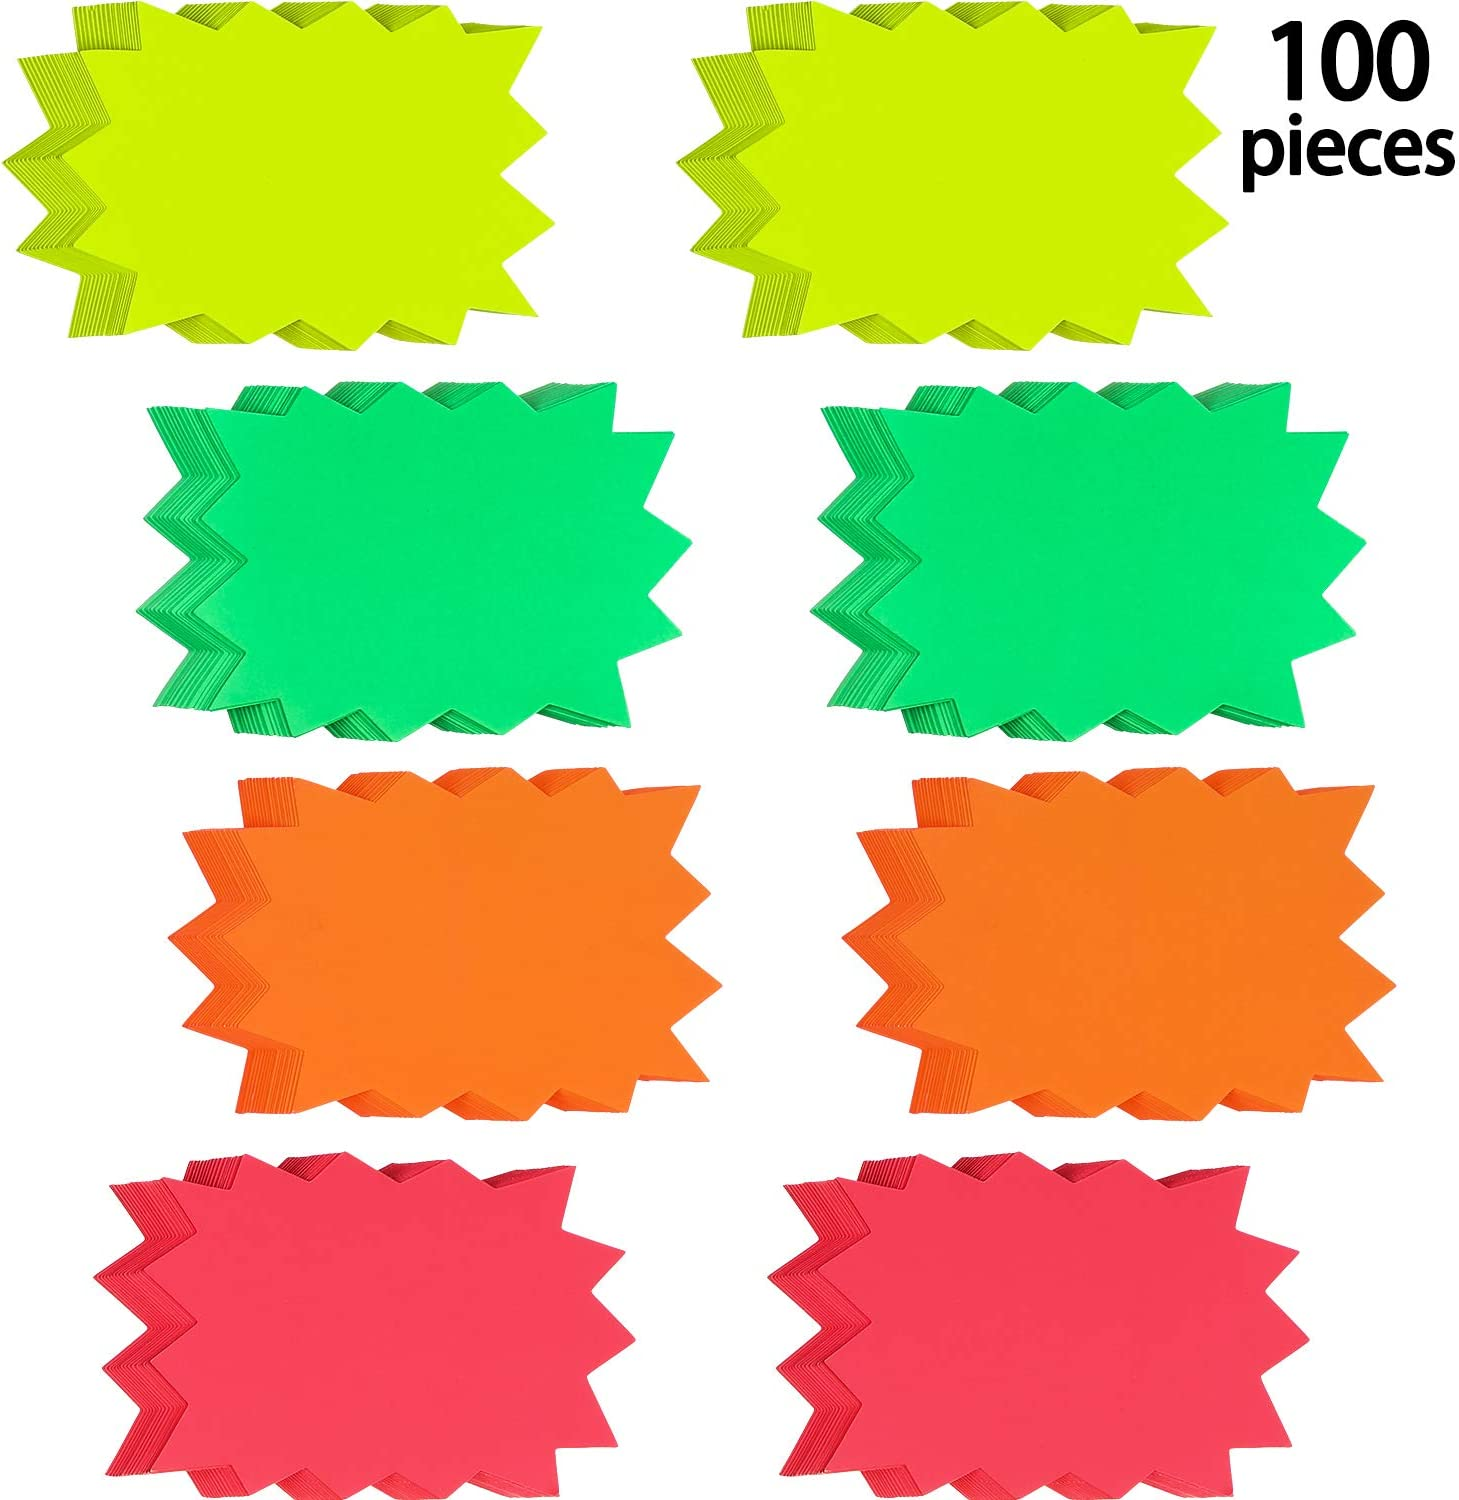 100 Pieces Starburst Signs Star Burst Signs Fluorescent Neon Paper für Retail Store, 4 Bright Colors (3 X 4.1 Inches)